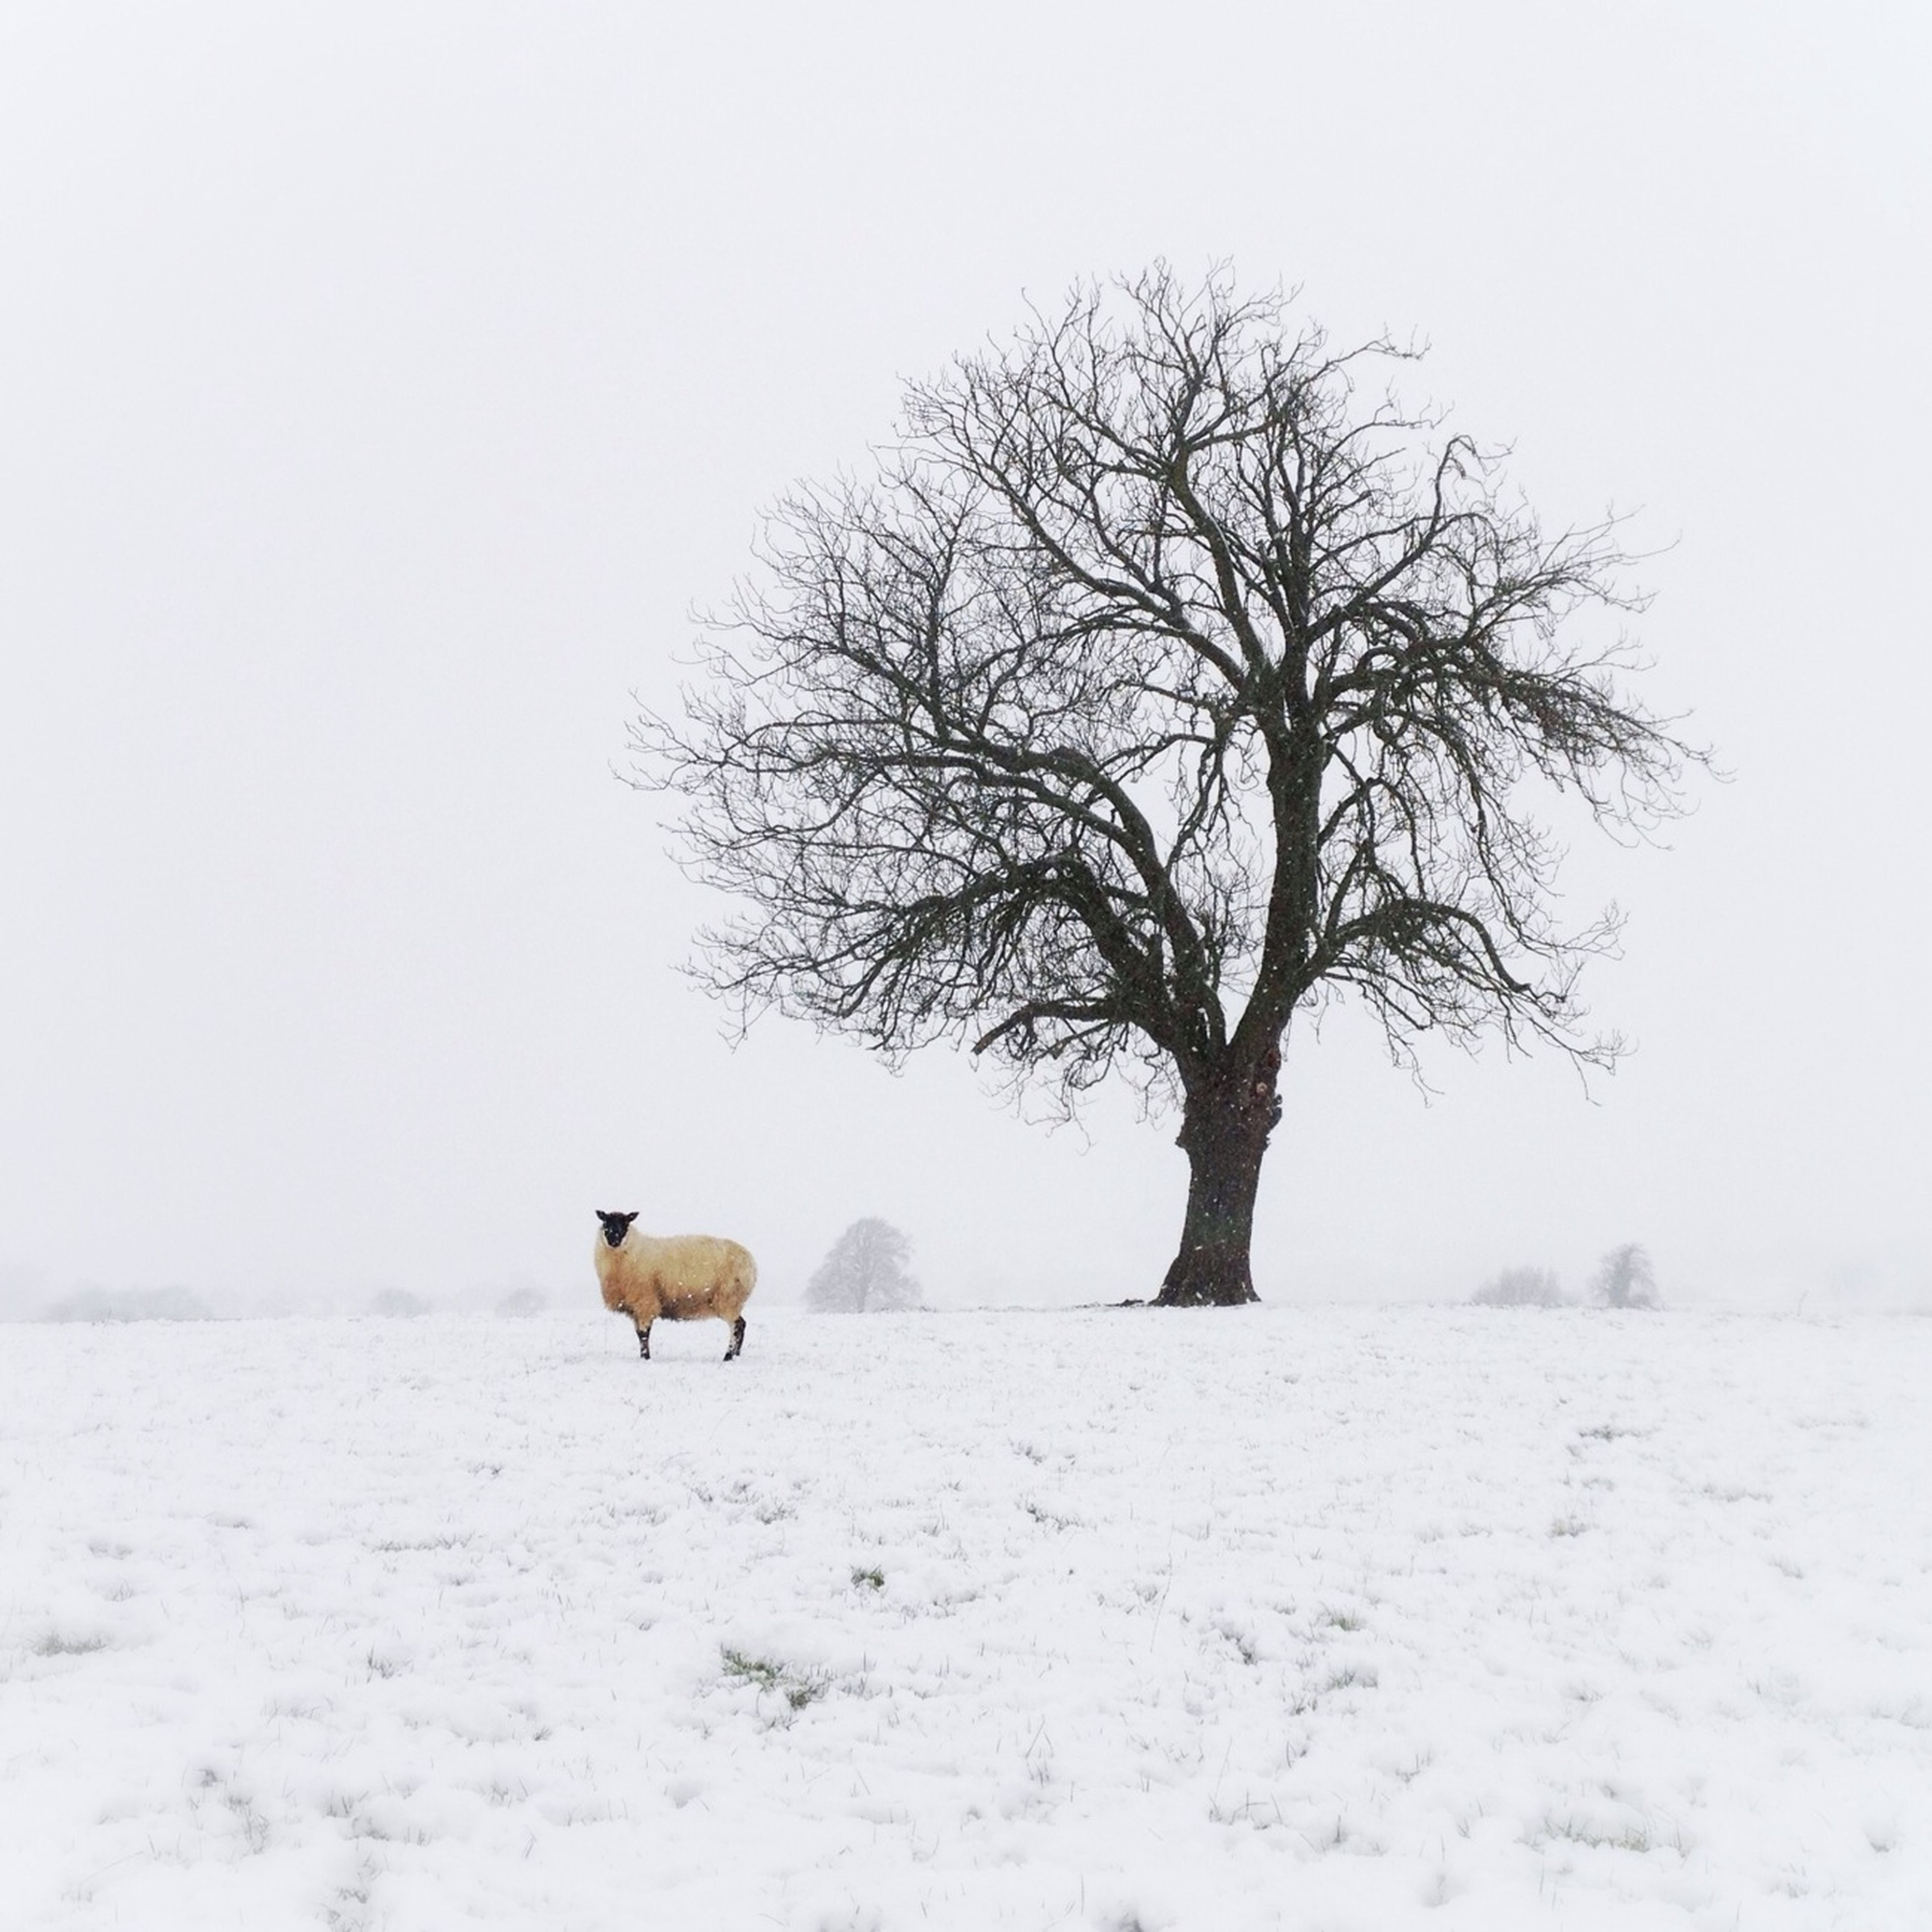 snow, winter, cold temperature, animal themes, season, weather, bare tree, tree, field, landscape, clear sky, one animal, covering, mammal, nature, tranquility, wildlife, tranquil scene, animals in the wild, white color